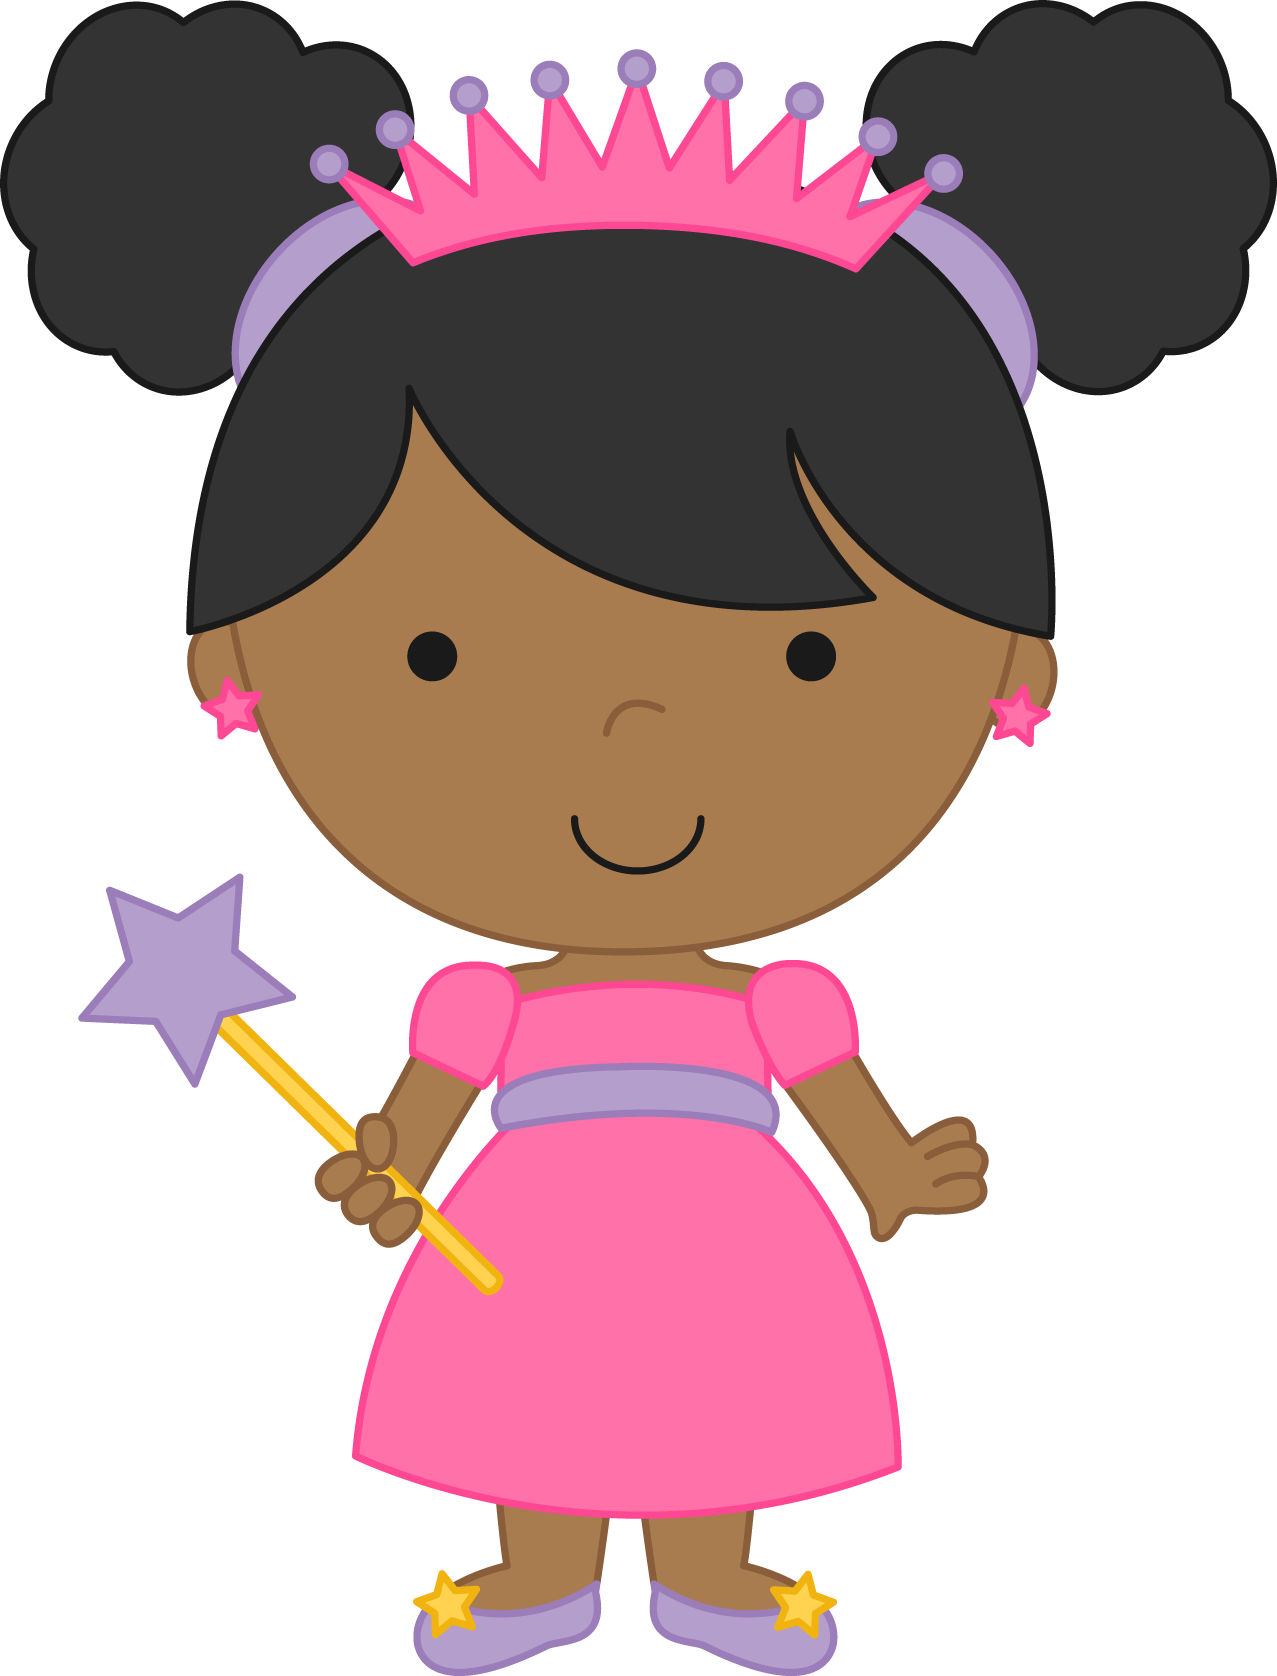 Surprise clipart child. Princesas e pr ncipes